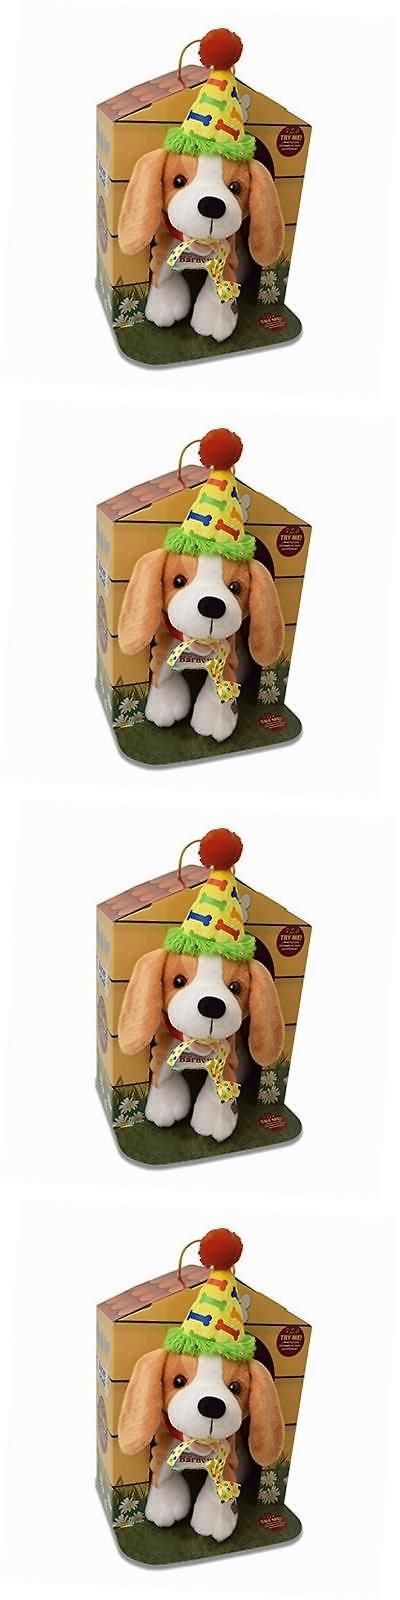 Talking Toys 145945: Barney Birthday Beagle Walks, Wiggles While Talking Excitedly About Your -> BUY IT NOW ONLY: $37.53 on eBay!